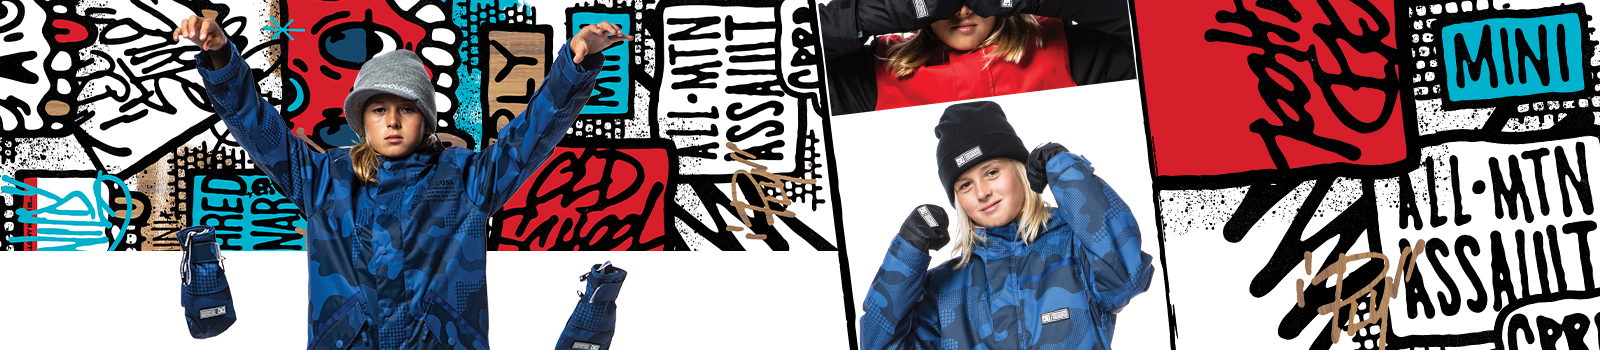 Kids Snowboard Accessories at DC Shoes